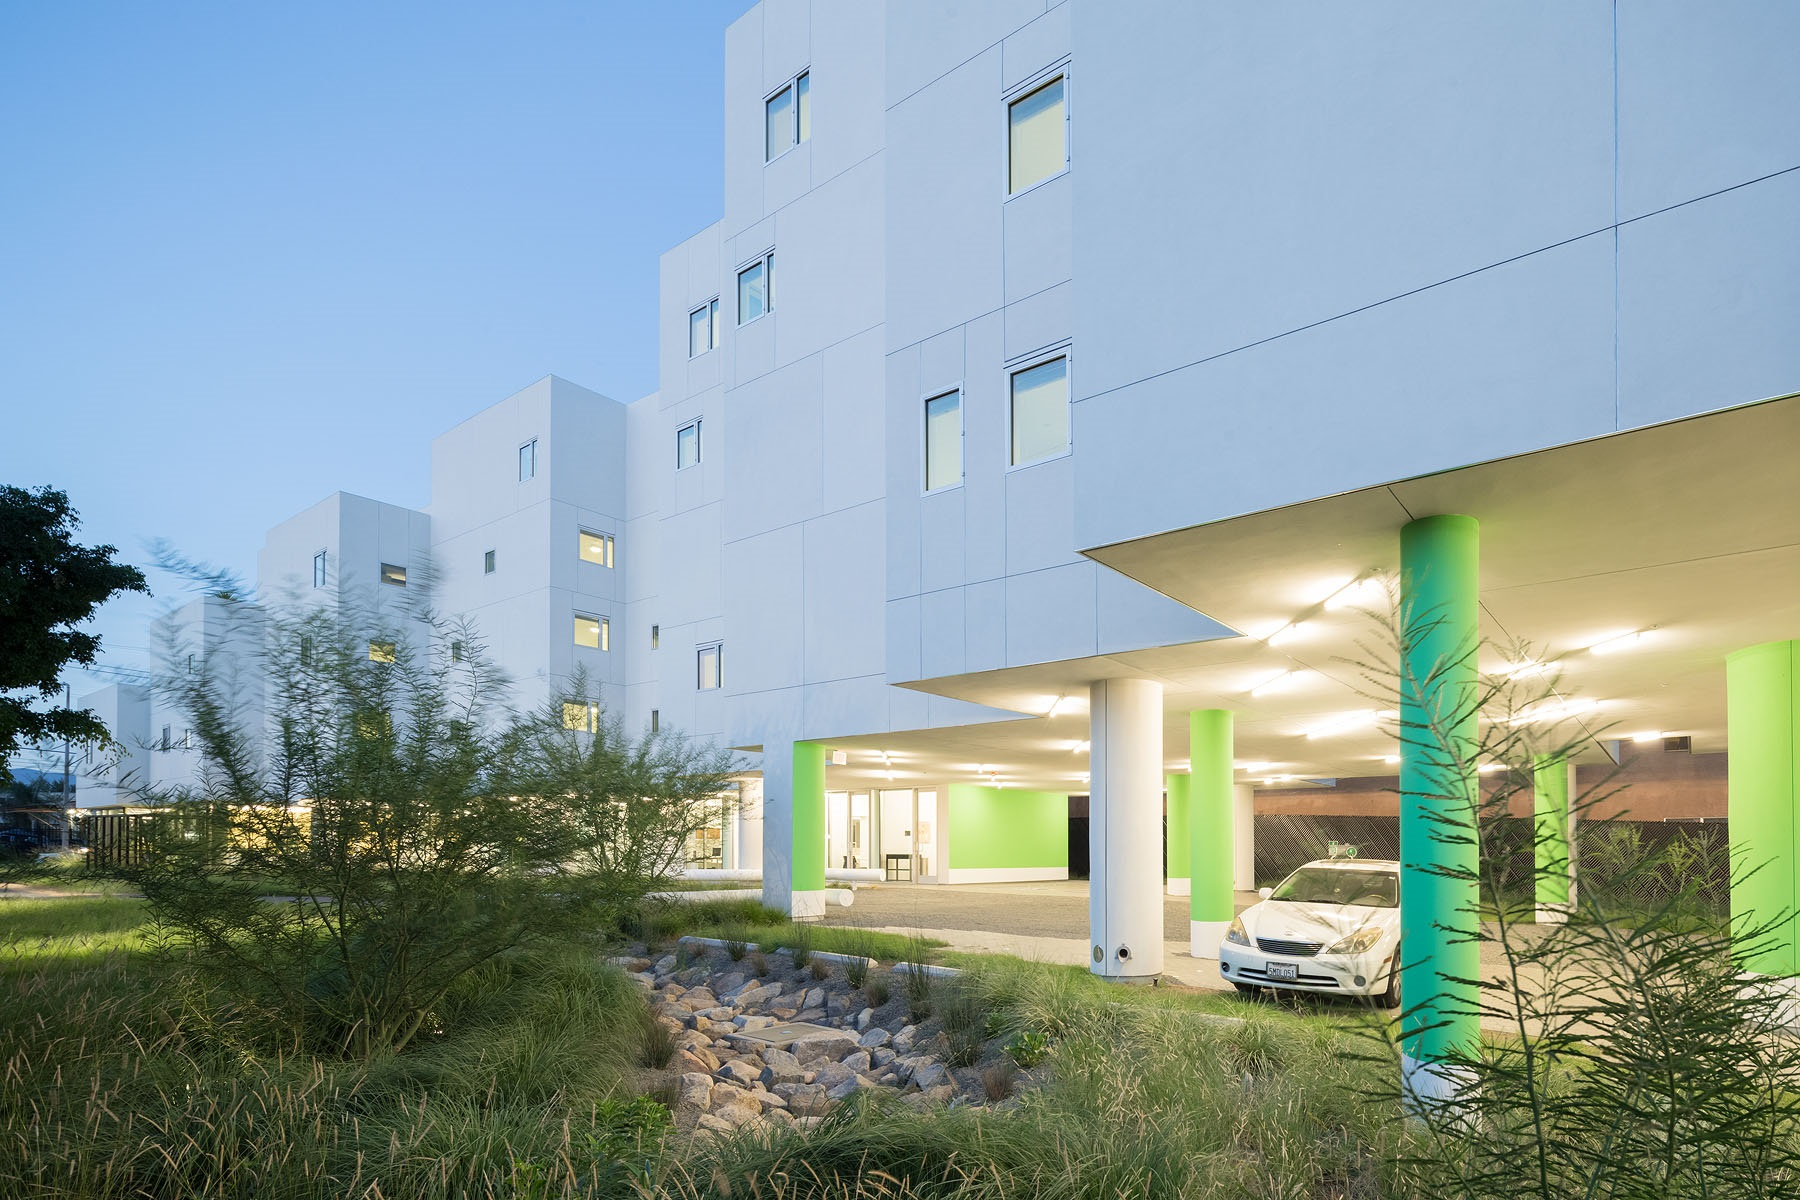 Design Makes a Difference in Affordable Housing | Multifamily ...